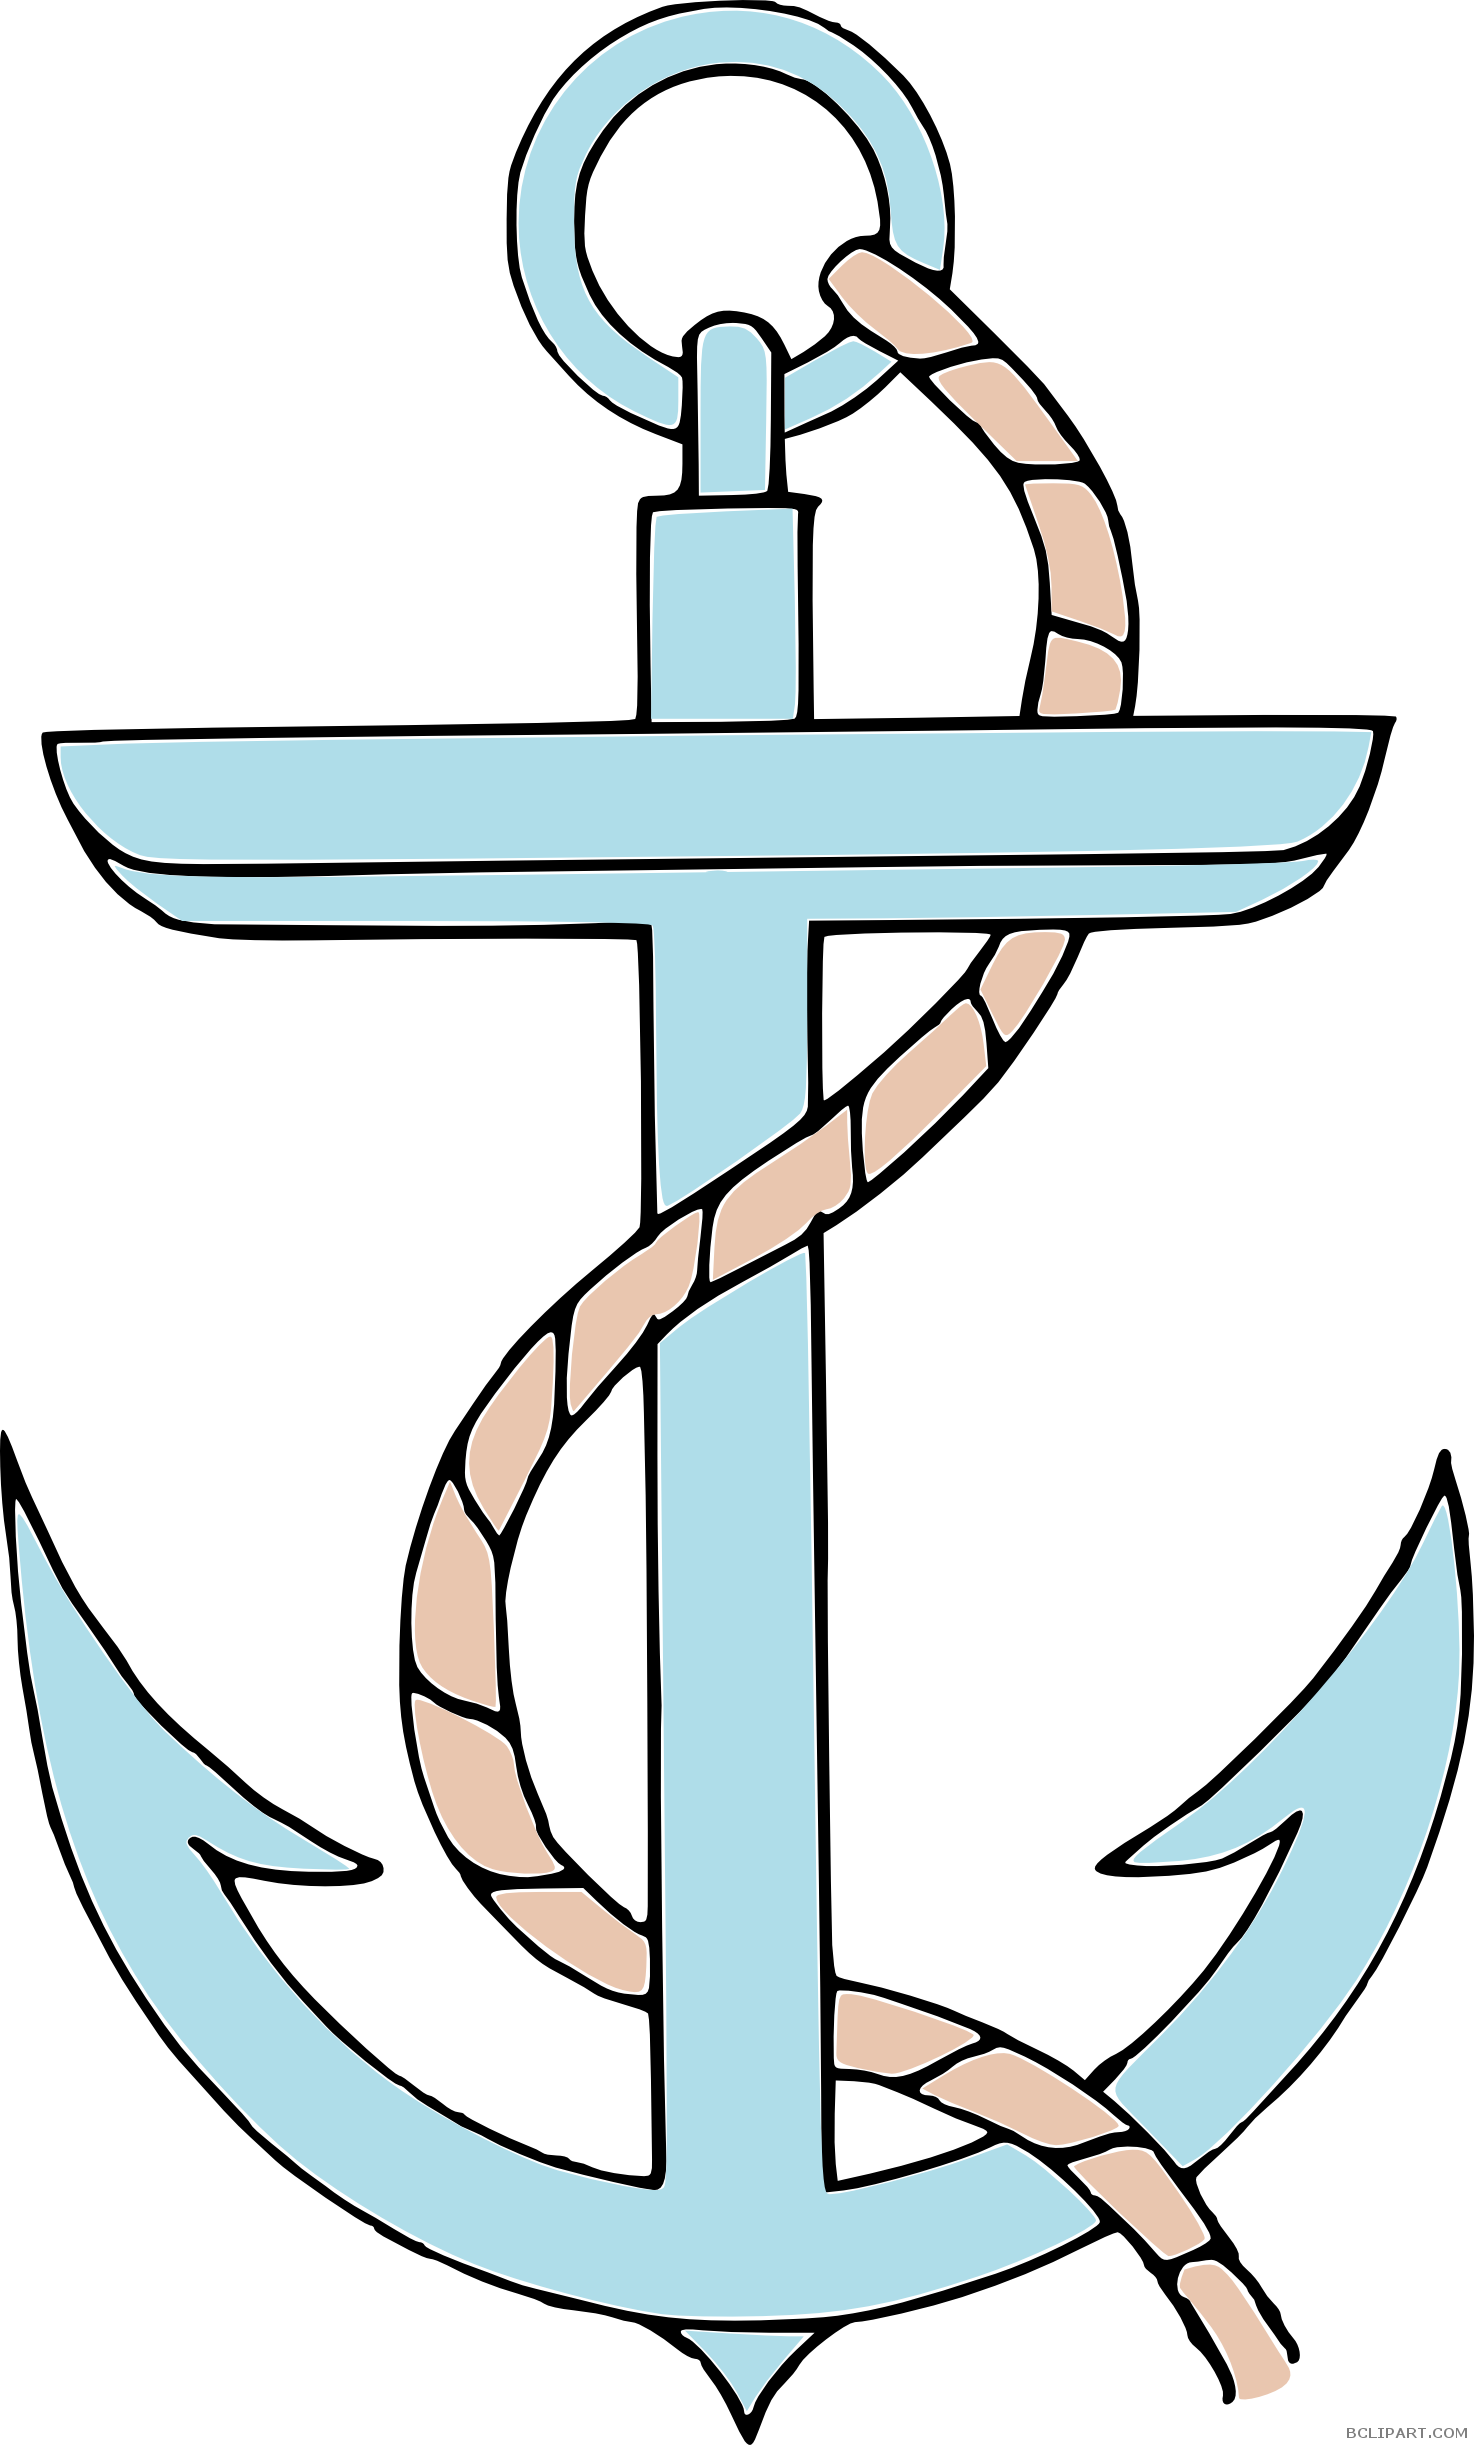 Clipart anchor blue anchor. Bclipart tools free images